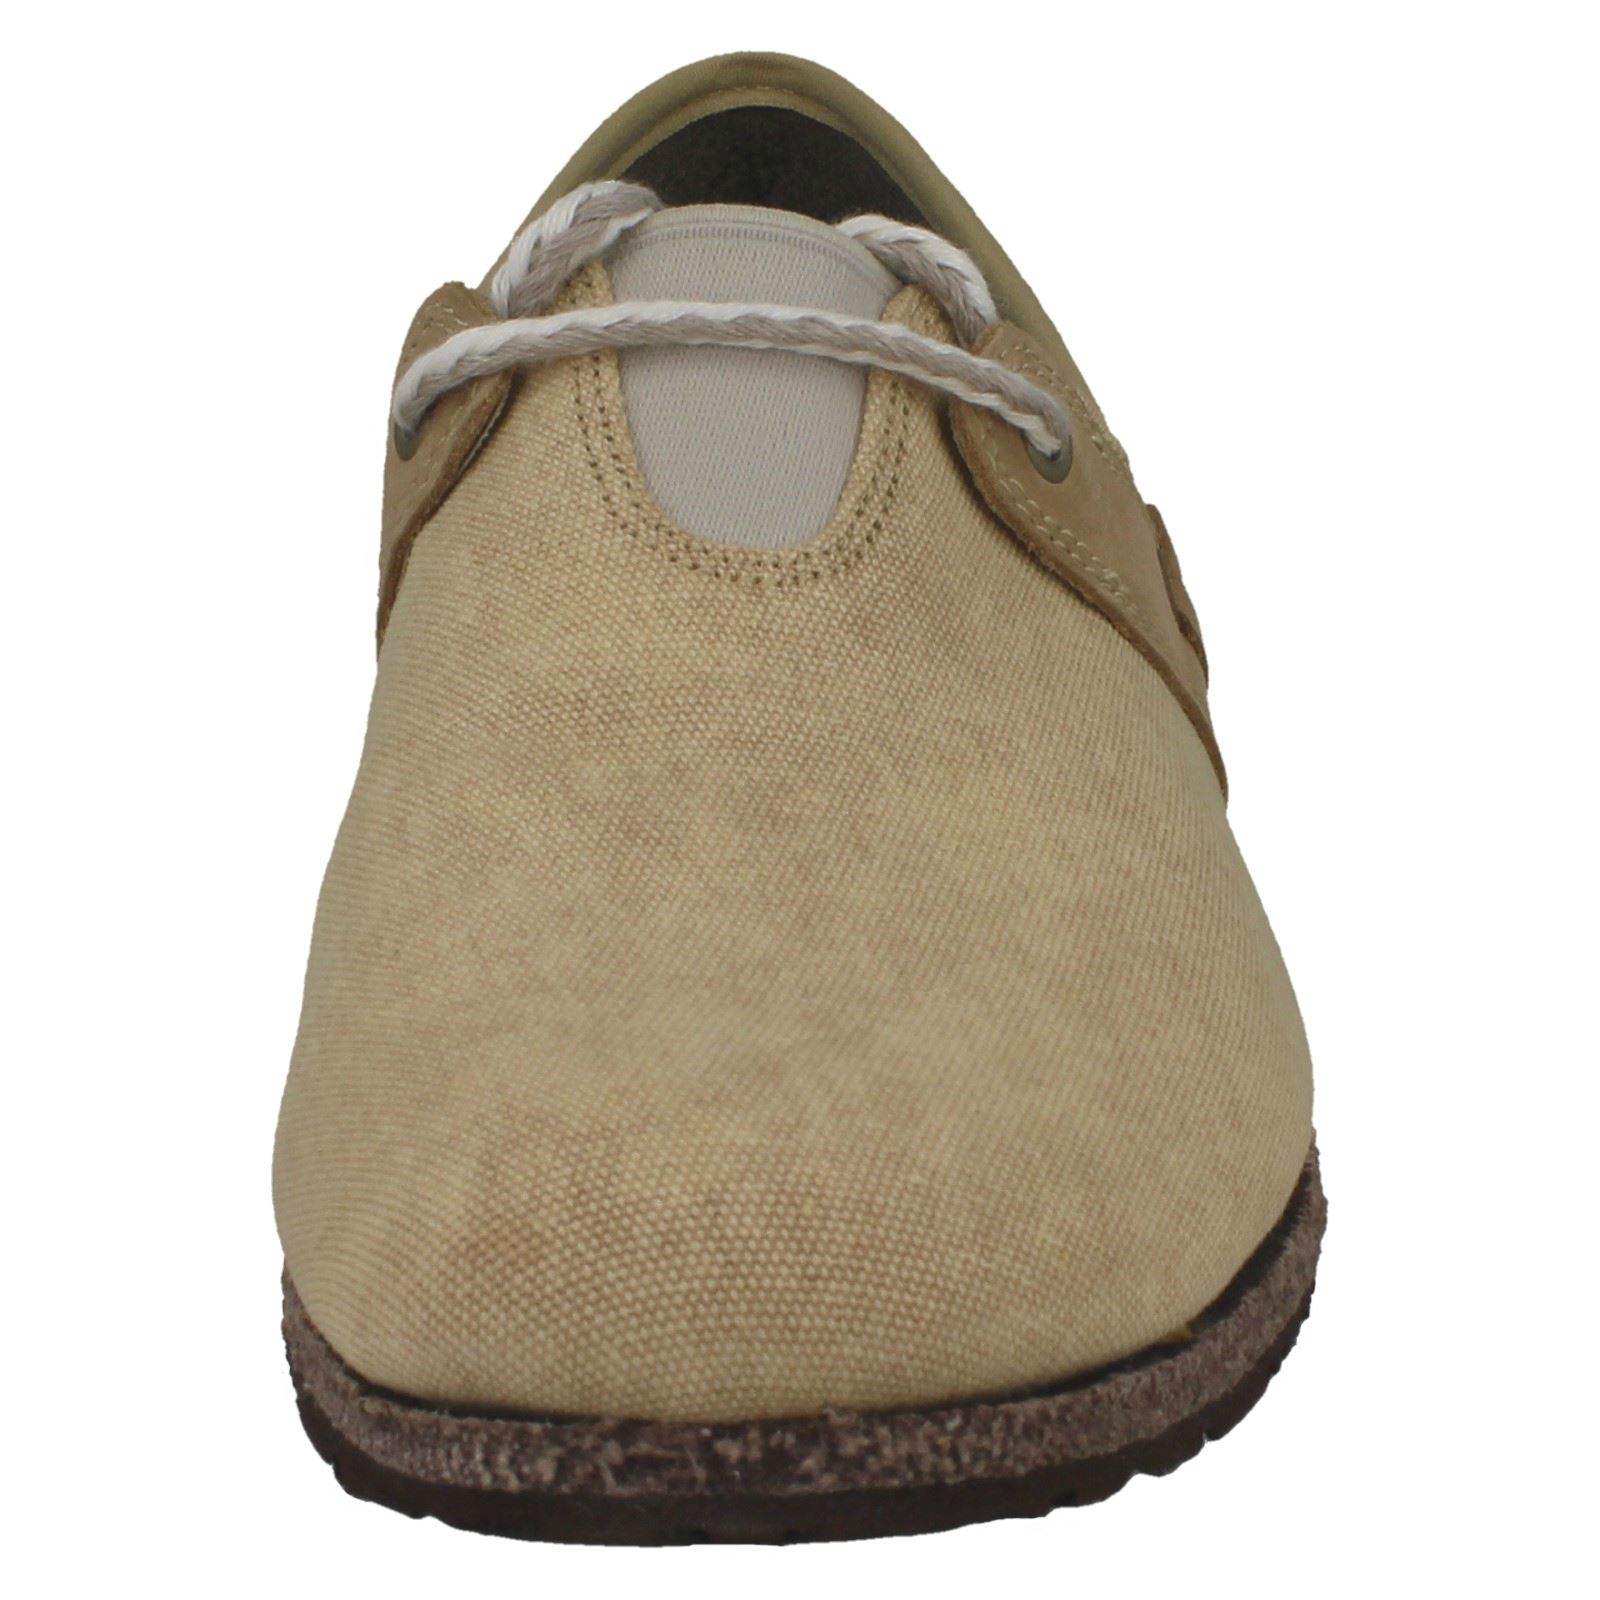 Ladies-Merrell-Casual-Flat-Shoes-Artemisia thumbnail 4